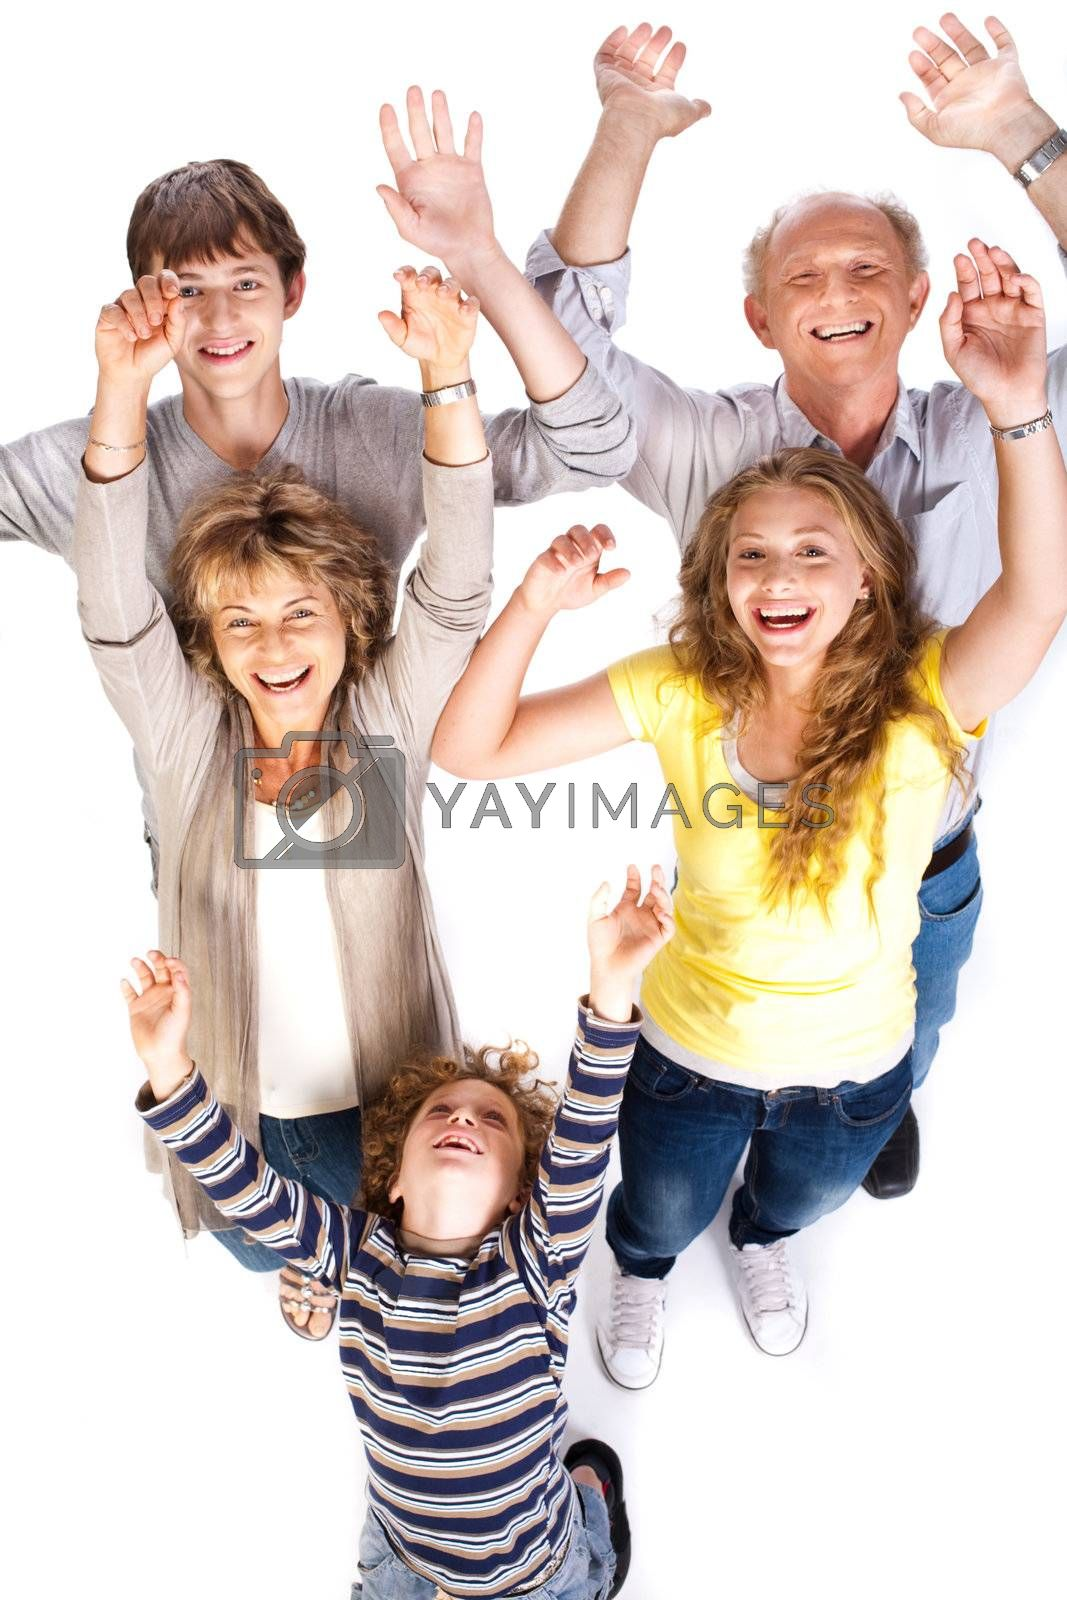 Overhead view of cheerful family, having a great time.